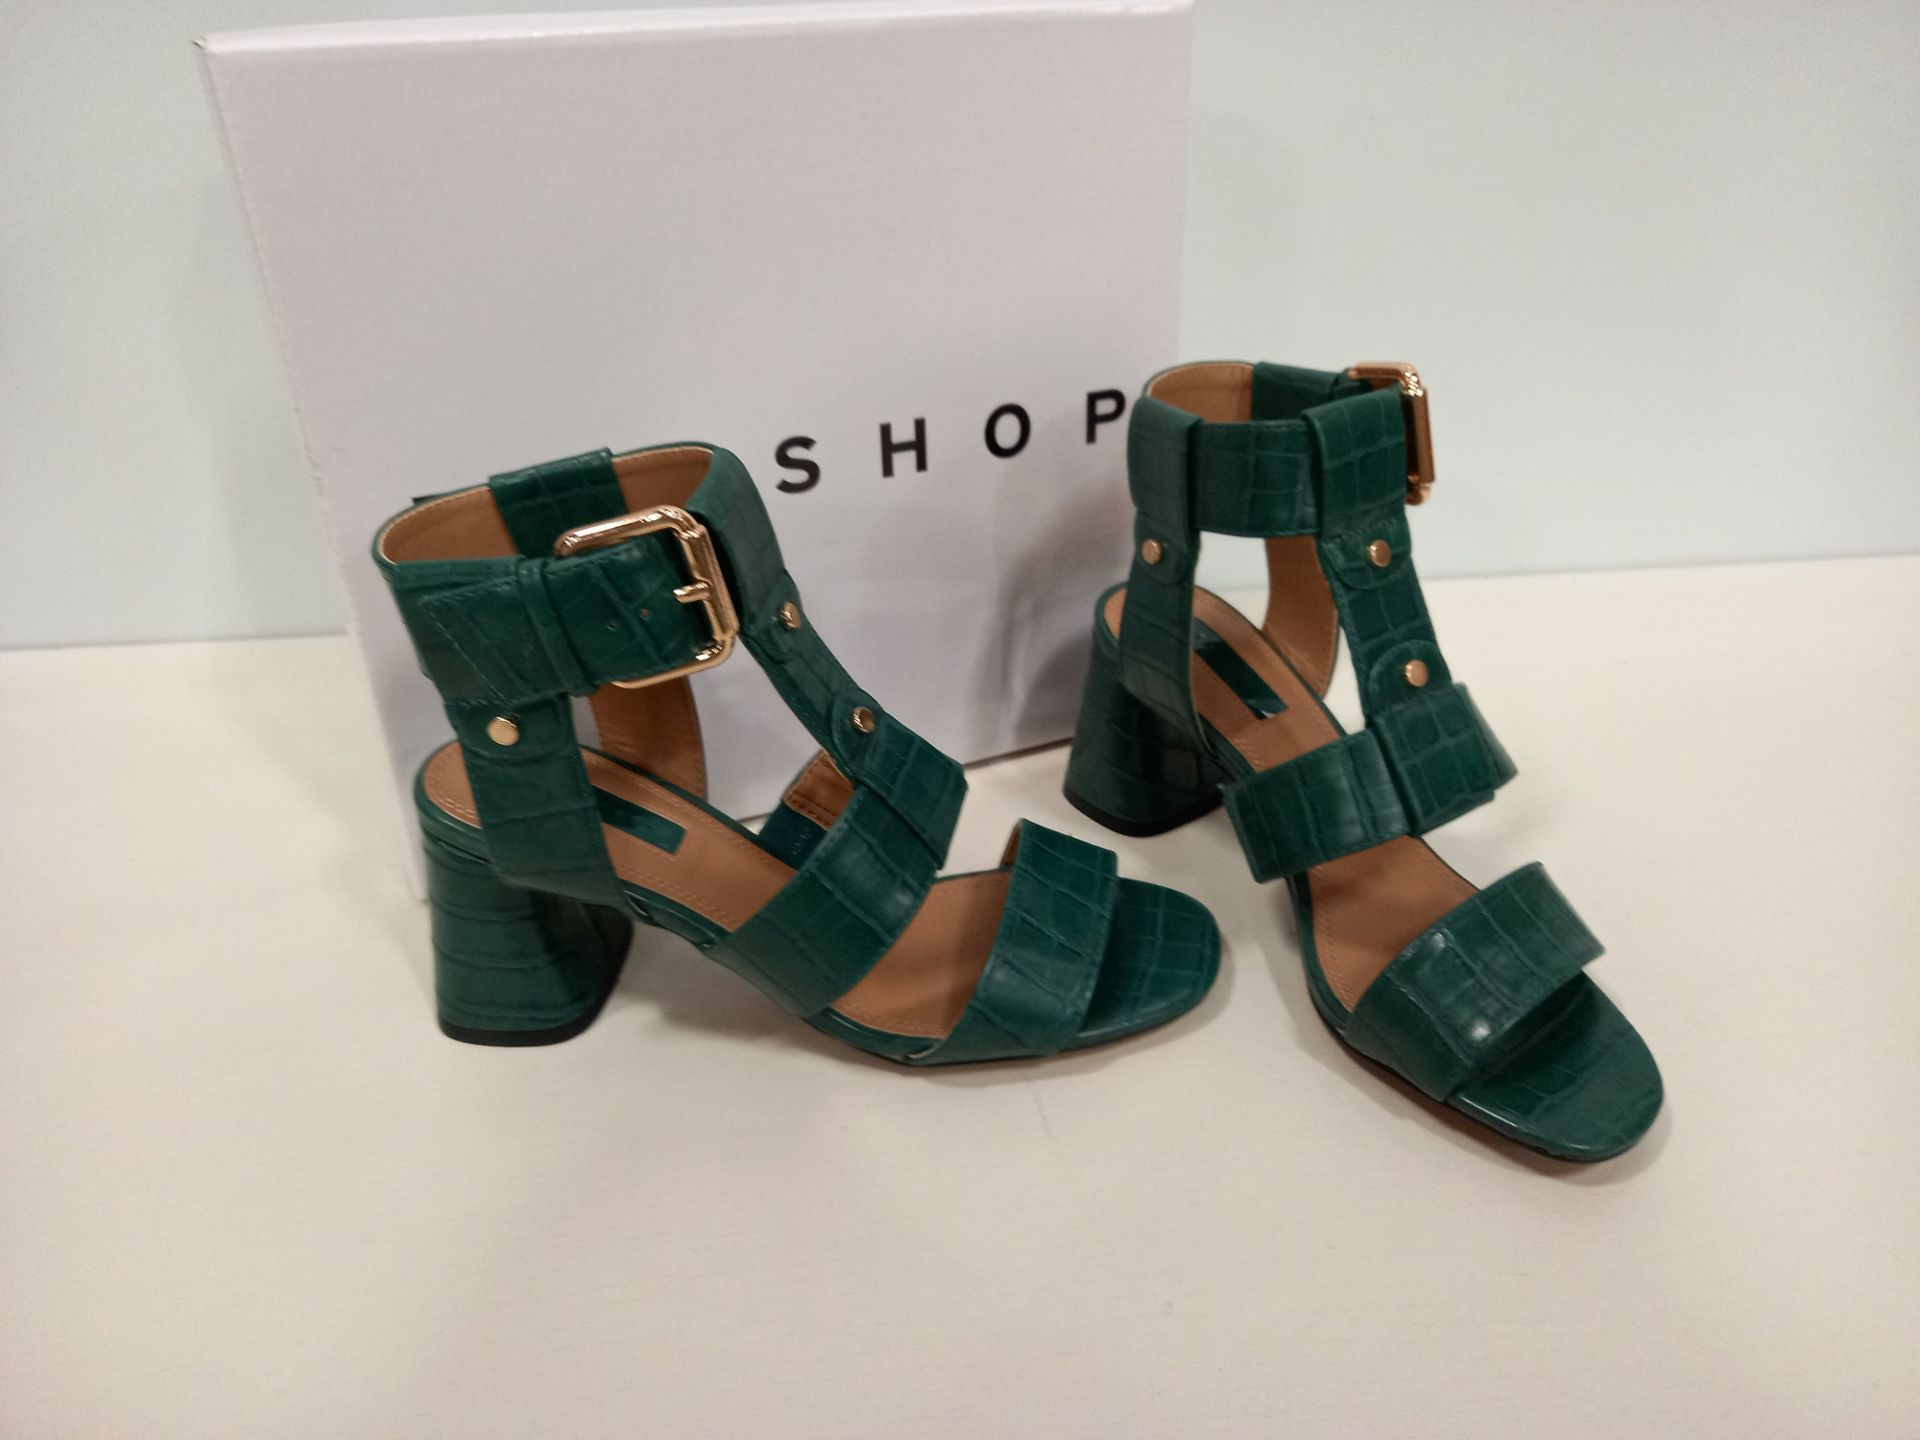 12 X BRAND NEW TOPSHOP DYLAN GREEN SHOES - 6 X UK SIZE 5 AND 6 X UK SIZE 3 RRP £32.00 (TOTAL RRP £